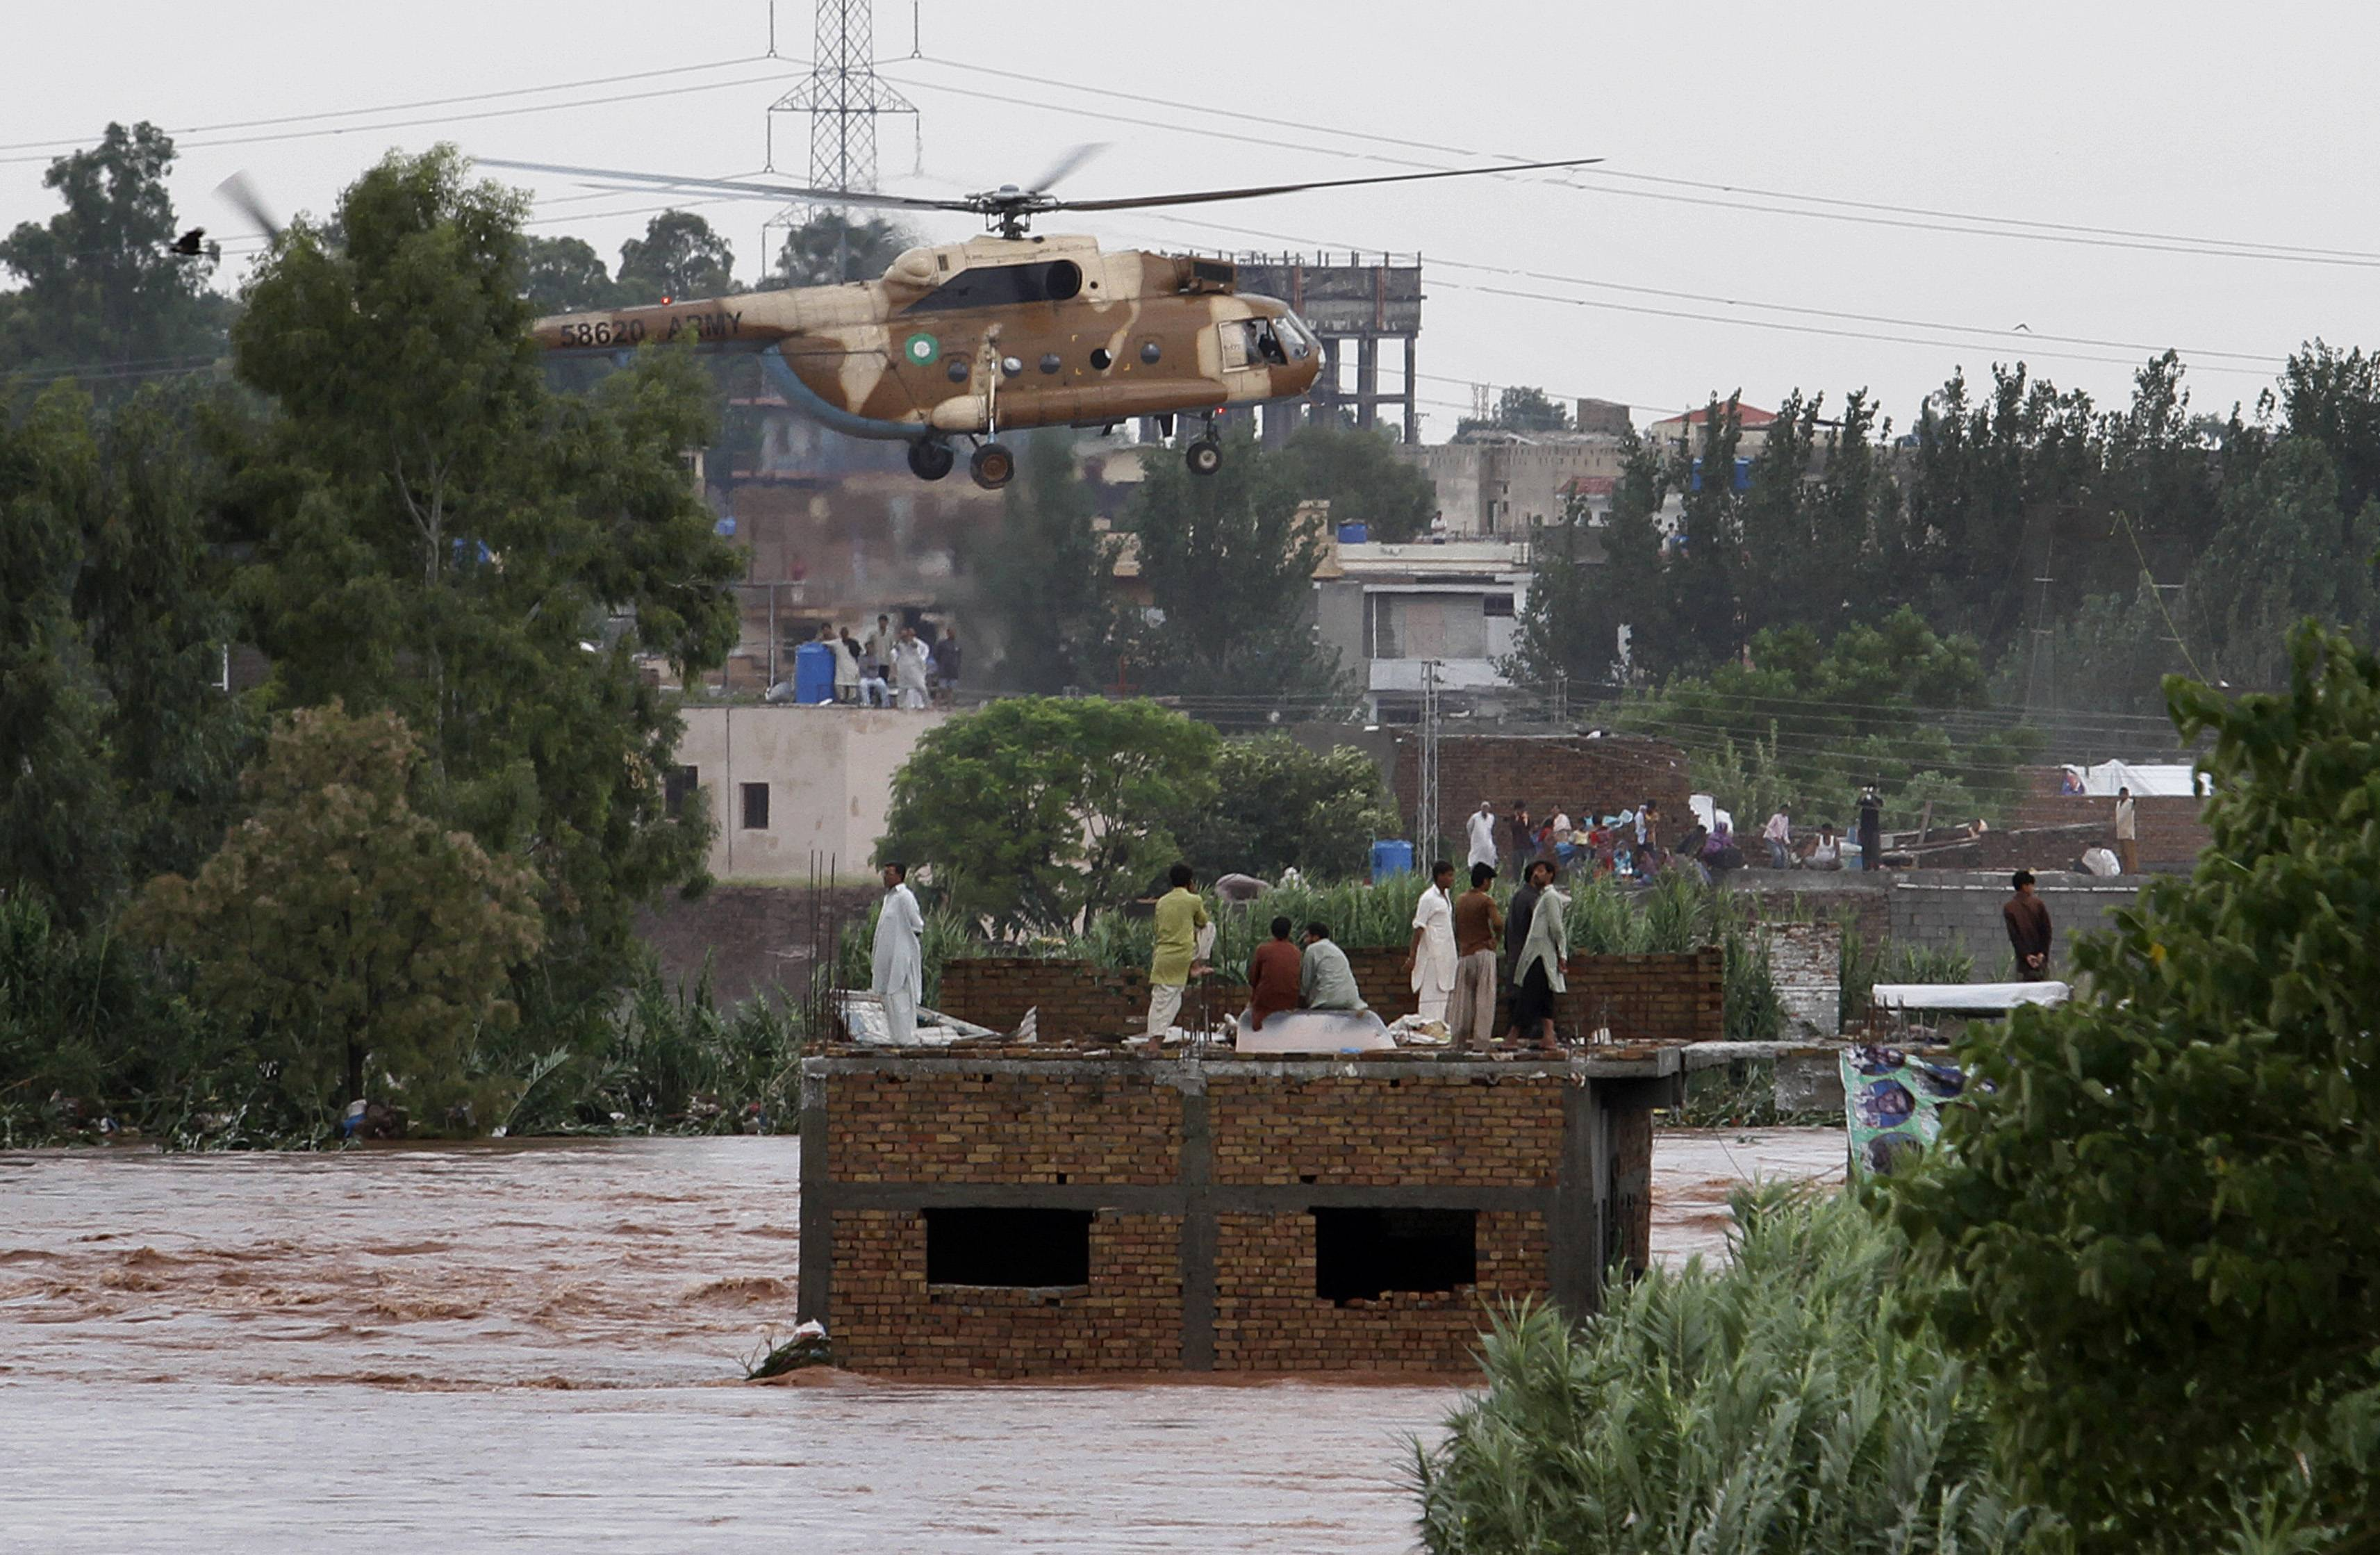 An Pakistani army helicopter hovers to rescue trapped people Friday from a flooded area on the outskirts of Islamabad, Pakistan. Heavy monsoon rains killed dozens of people across Pakistan as flash flood inundated villages, prompting authorities to send troops to evacuate residents and assist in the emergency, officials said.